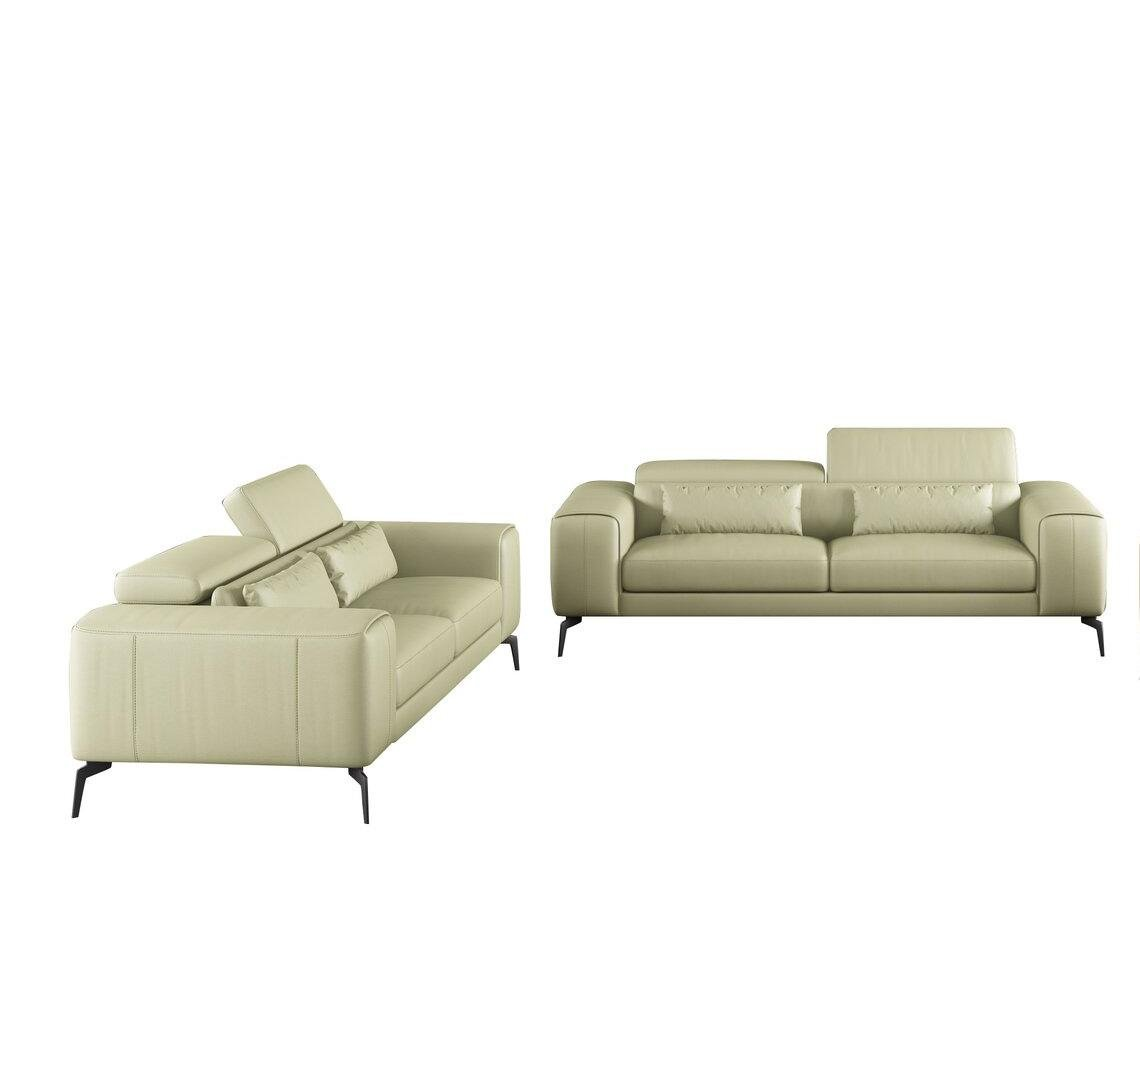 Contemporary, Modern Off-White Leather and Wood, Top Grain Leather, Solid Hardwood Sofa Set 2 pcs  CAVOUR by European Furniture